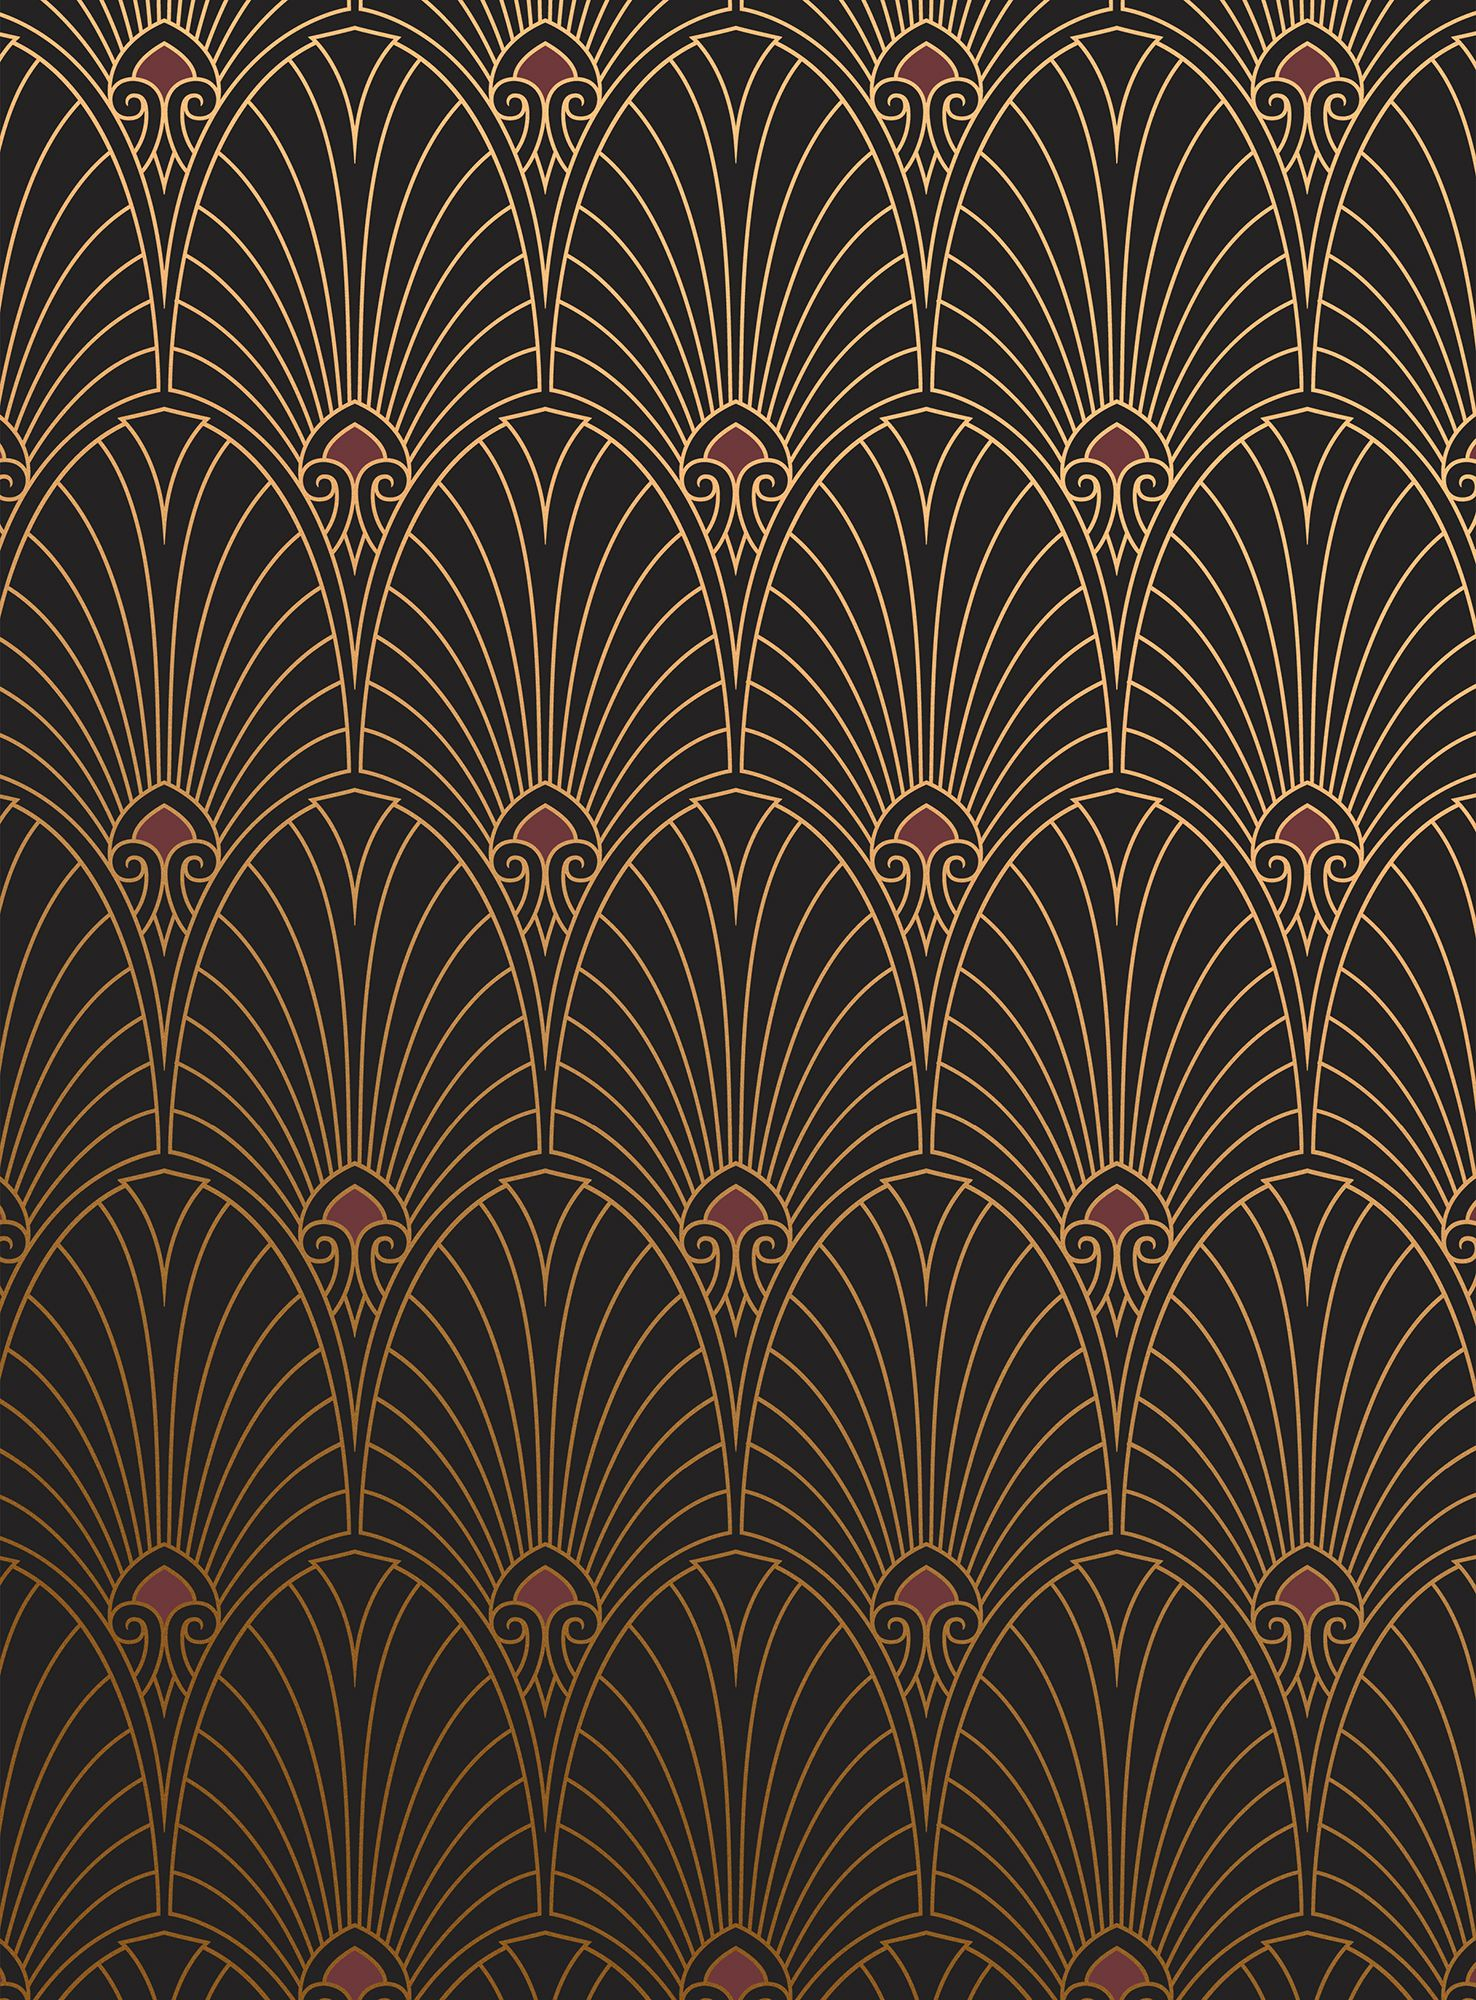 18 Art Deco Wallpaper Ideas , Decorating with 1920s Art Deco